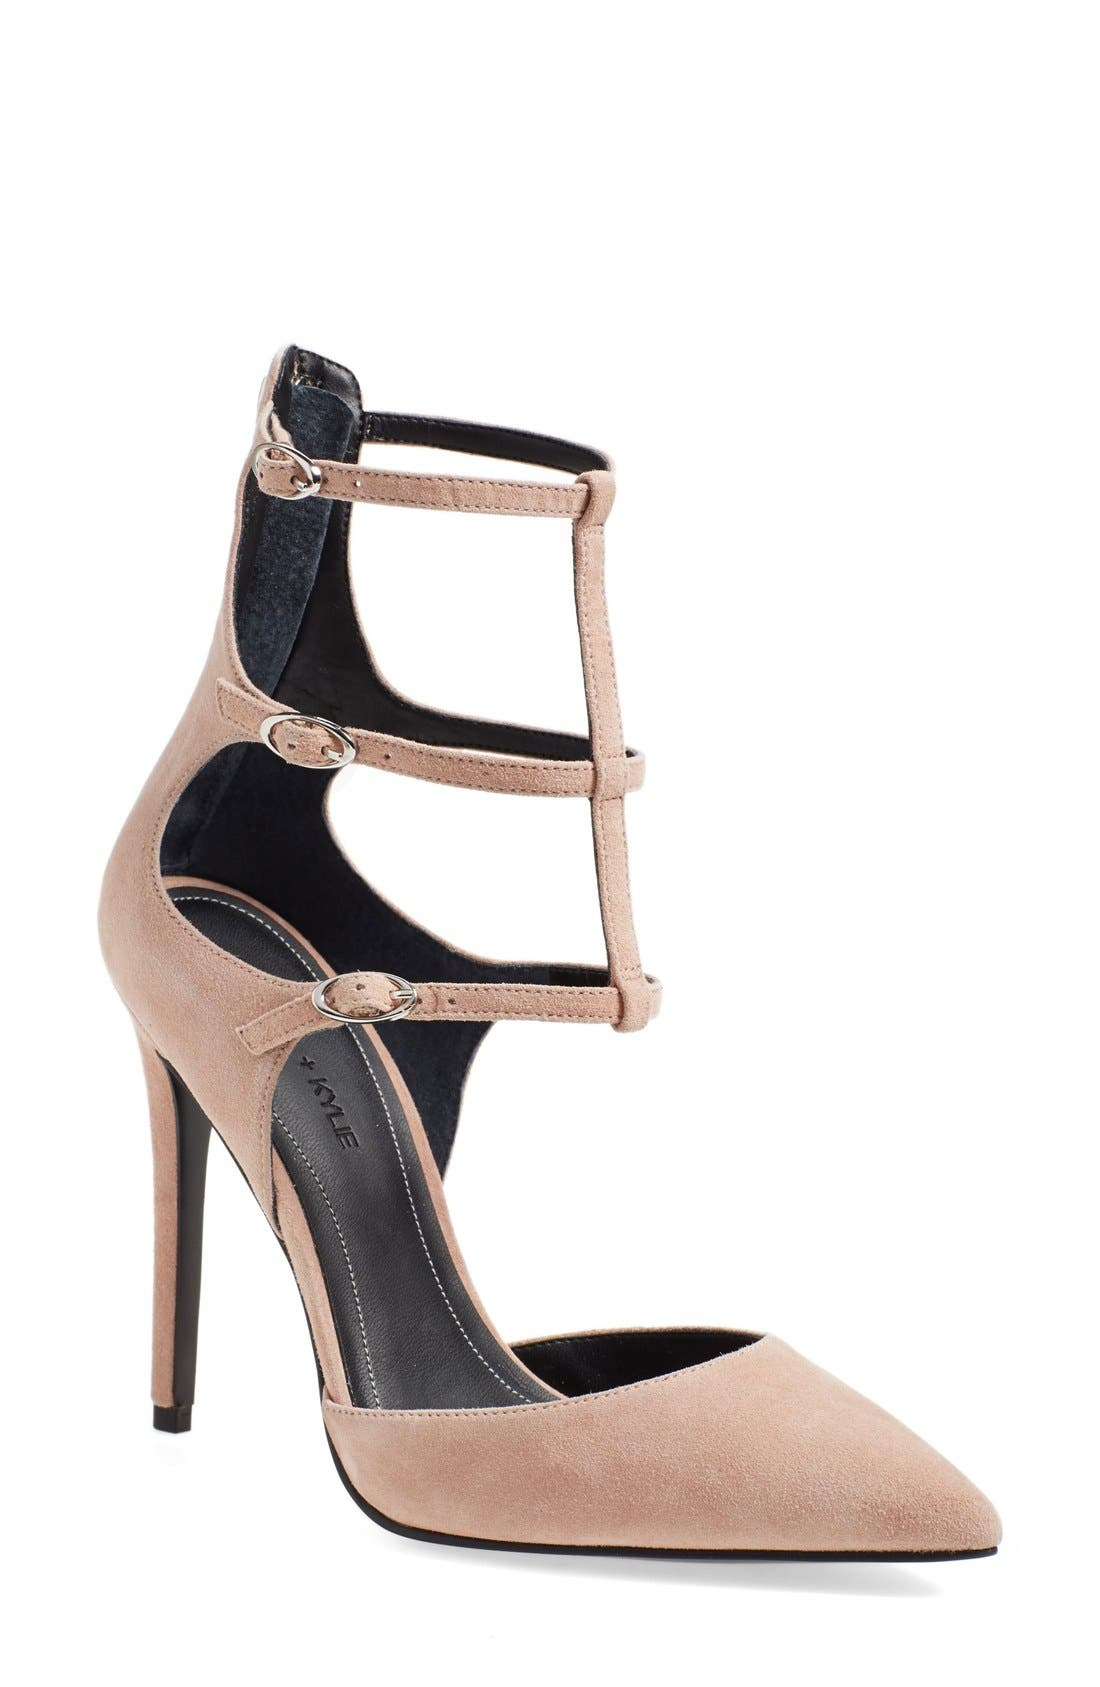 Alternate Image 1 Selected - KENDALL + KYLIE 'Alisha' Tiered Ankle Strap Pump (Women)